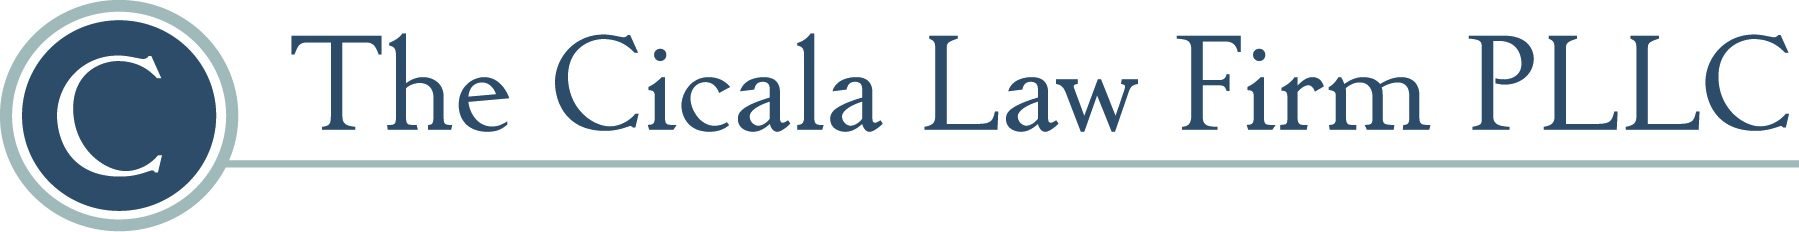 The Cicala Law Firm PLLC Logo